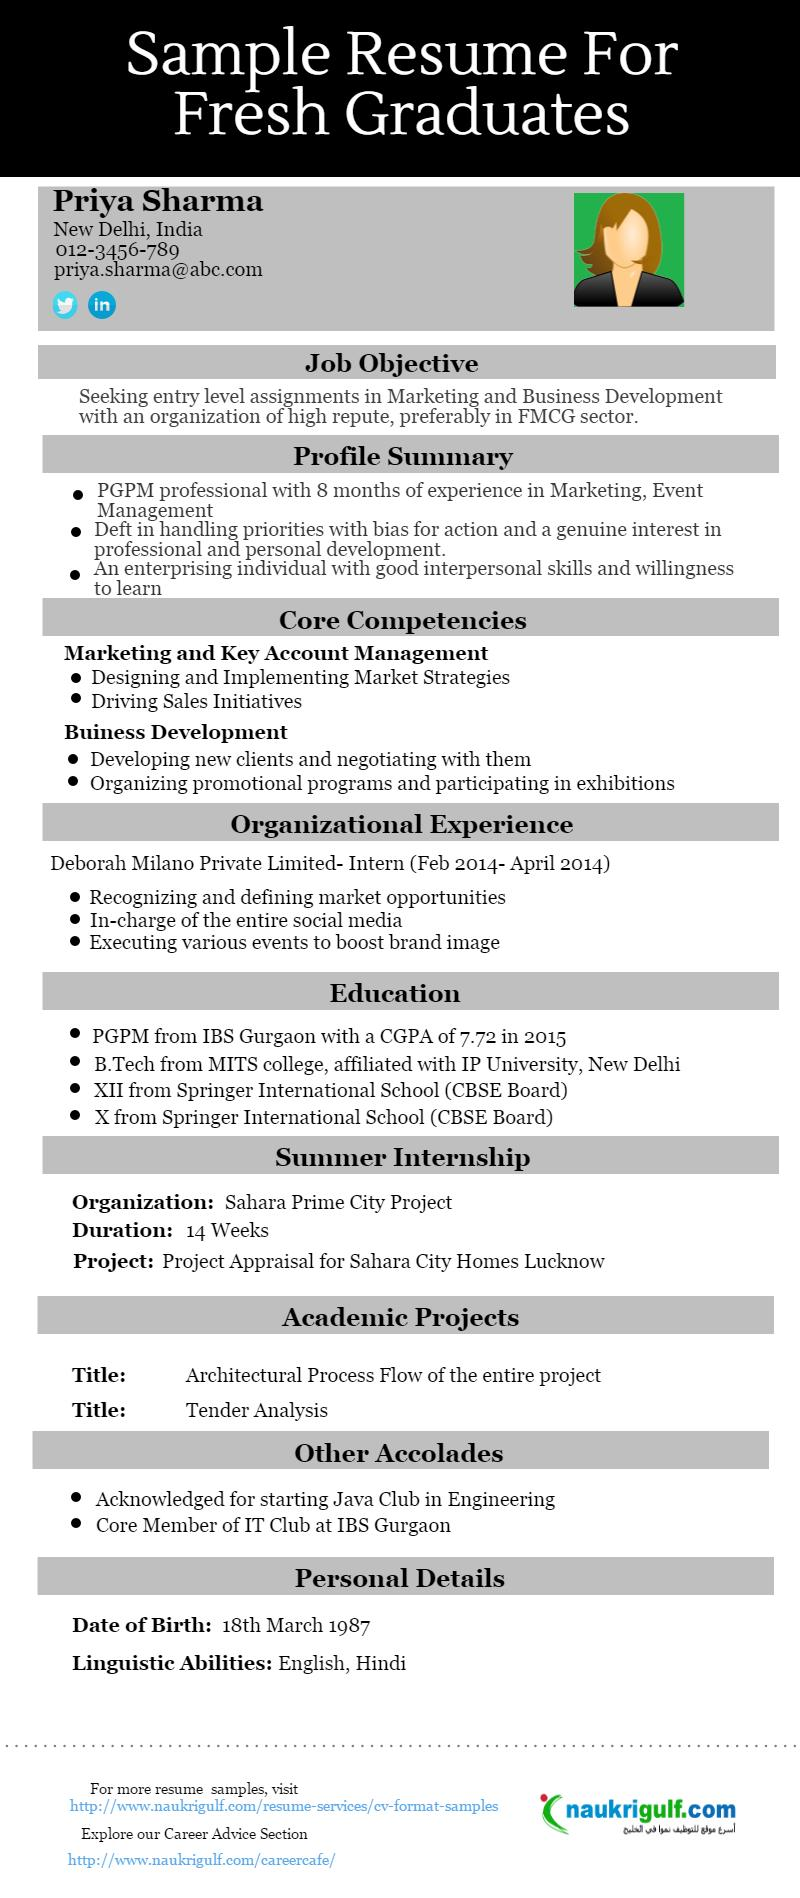 resume objective statement for recent college graduate